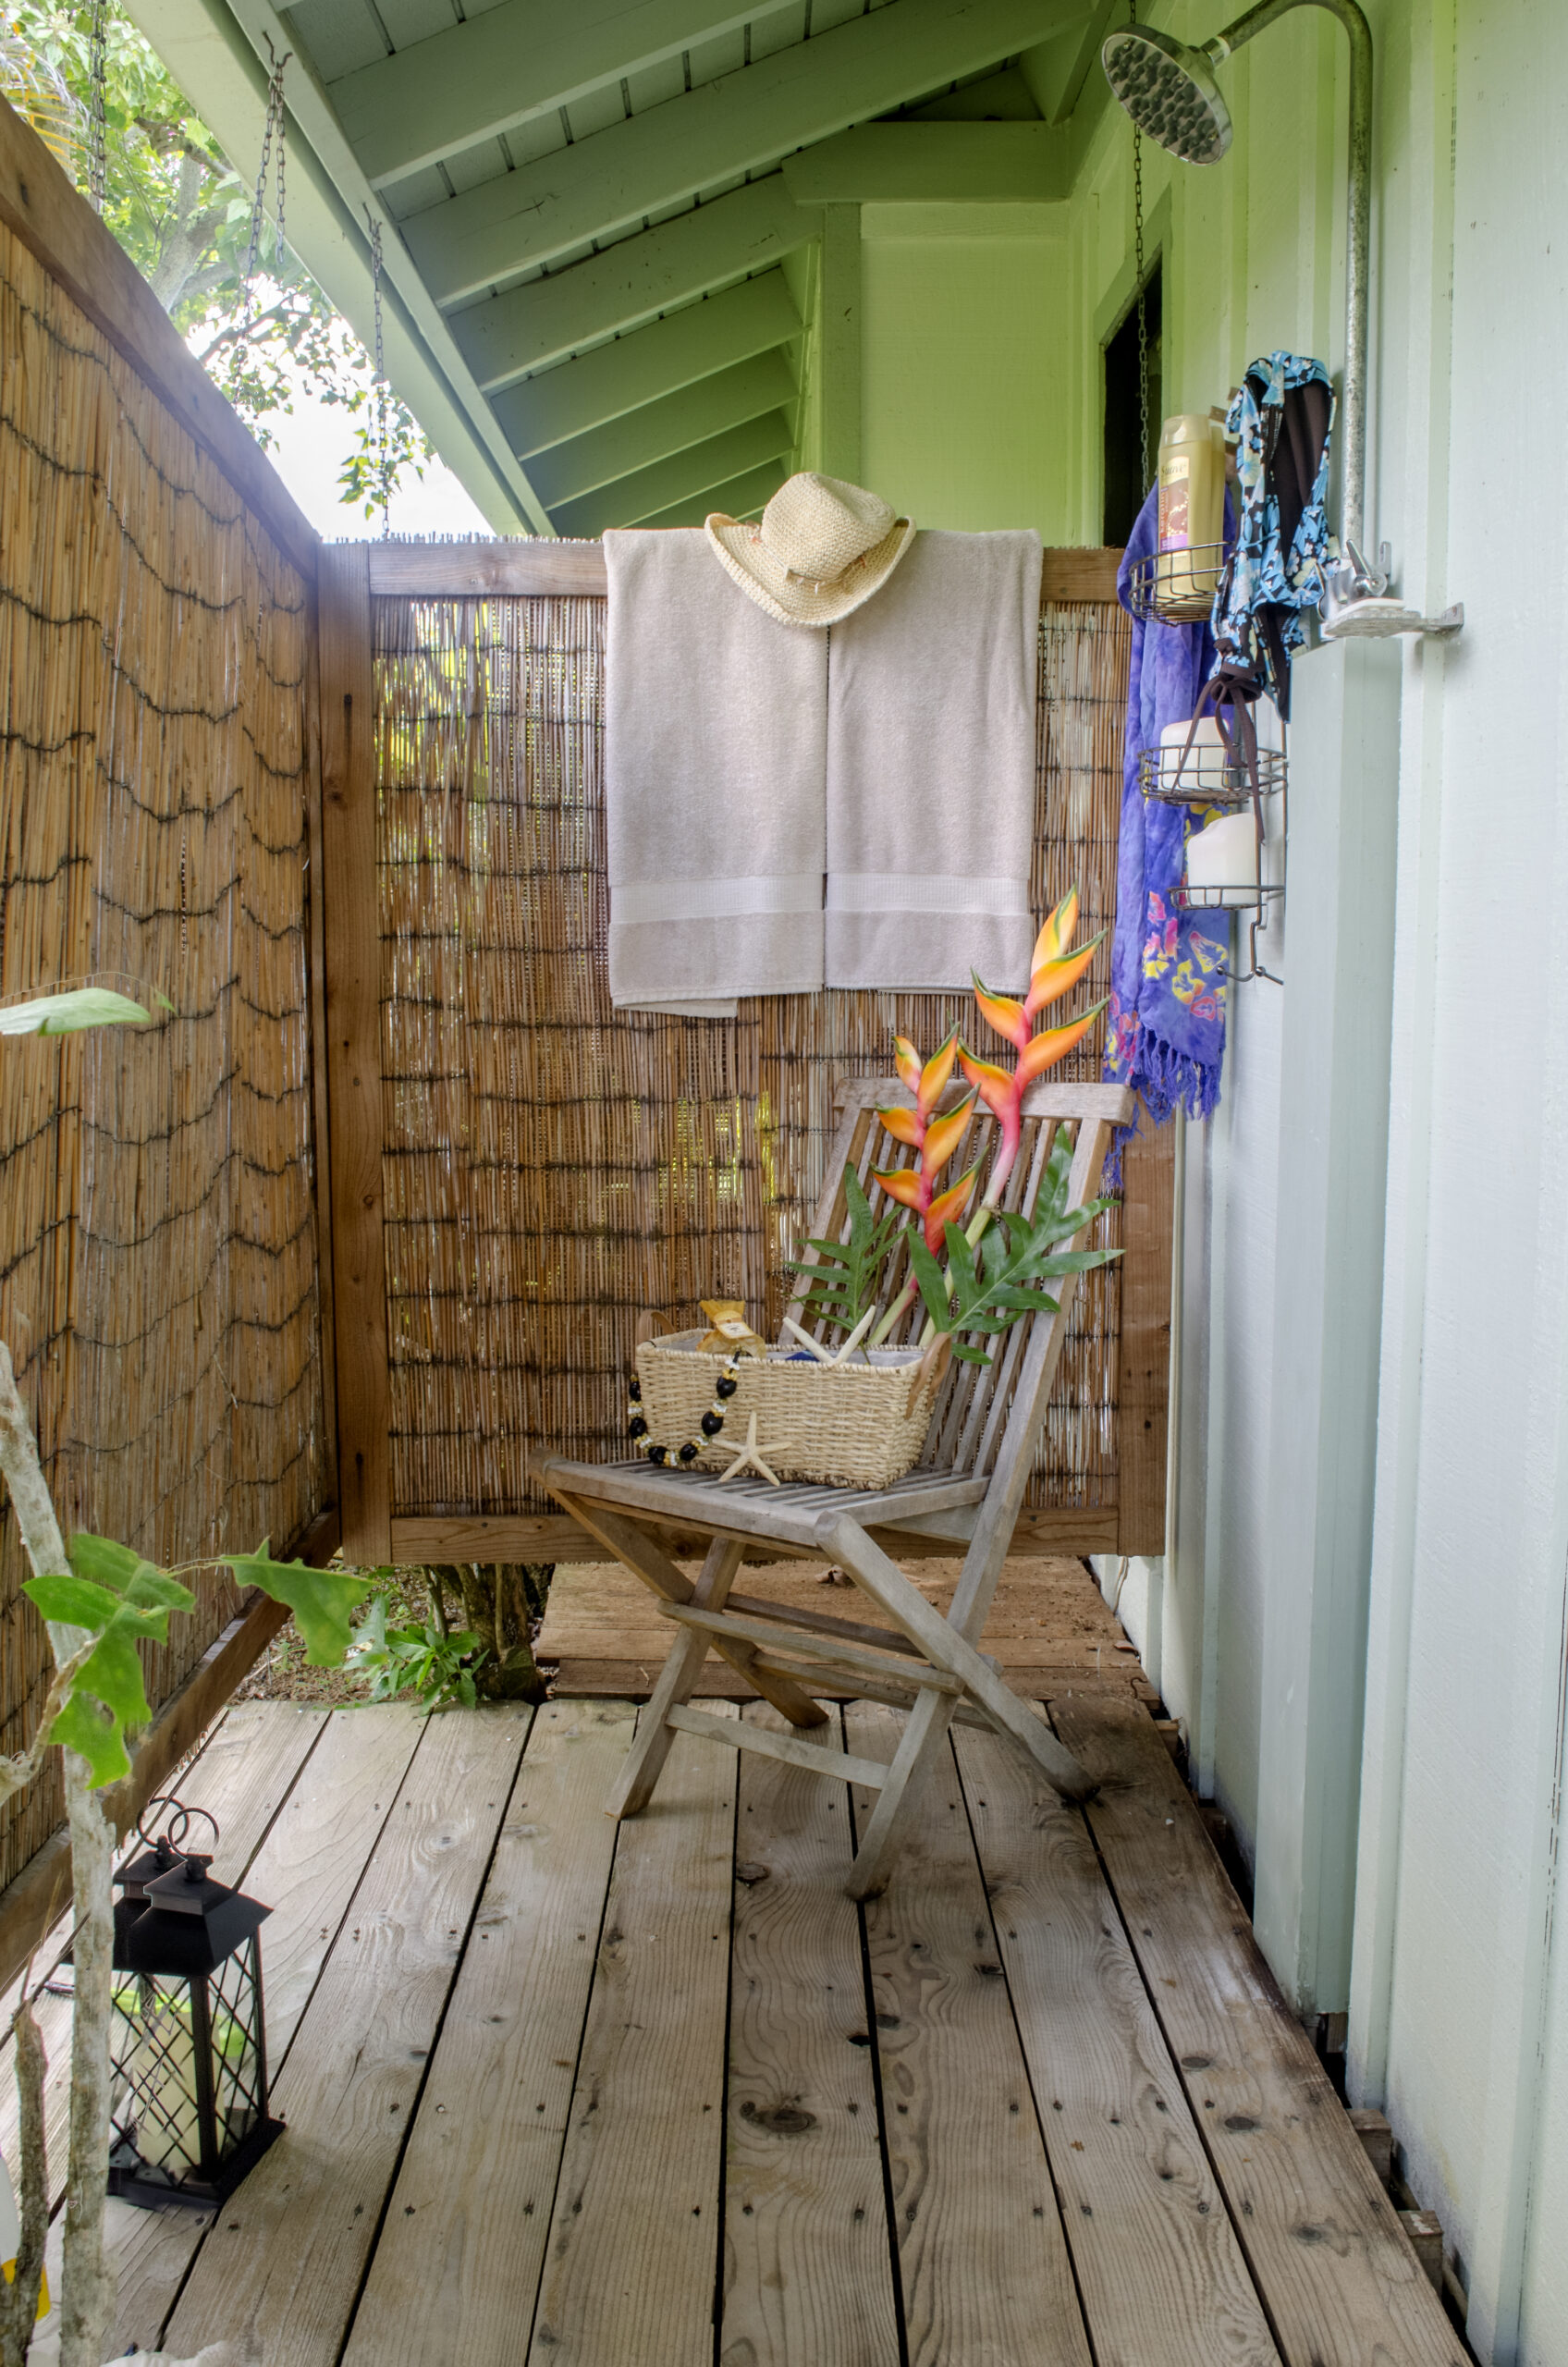 Tropical outdoor shower in our Kauai Rental